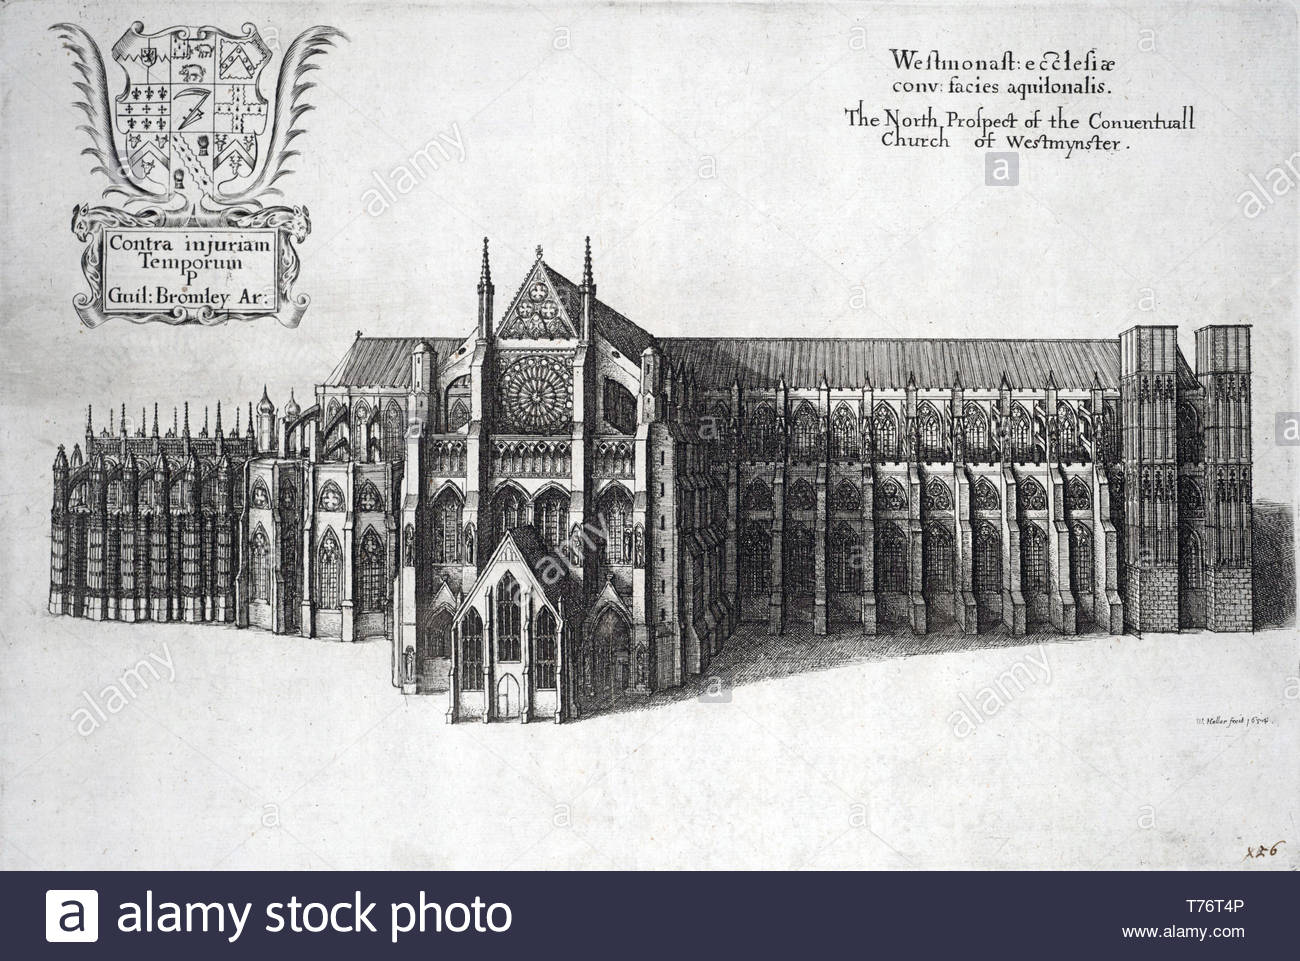 Westminster Abbey, London, etching by Bohemian etcher Wenceslaus Hollar from 1654 Stock Photo